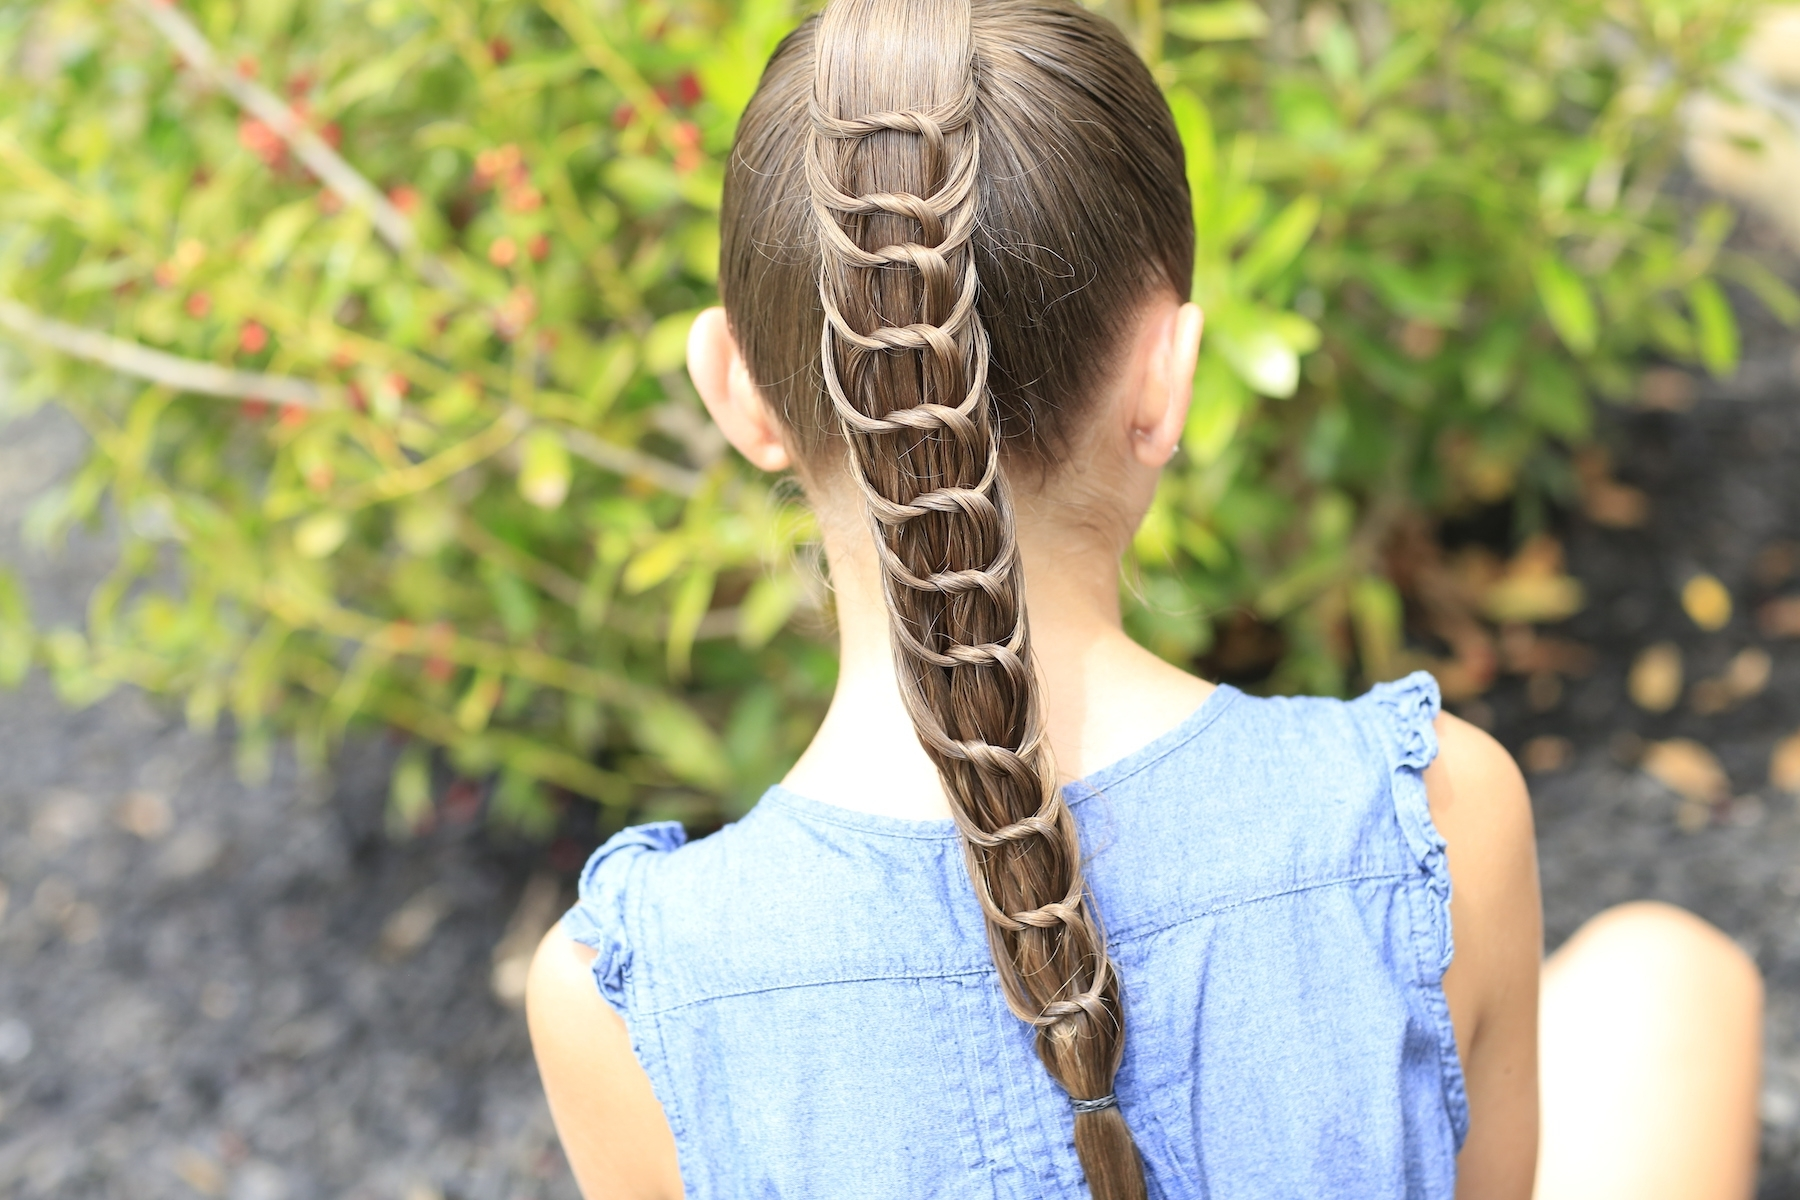 Hairstyles For Girls (View 7 of 20)